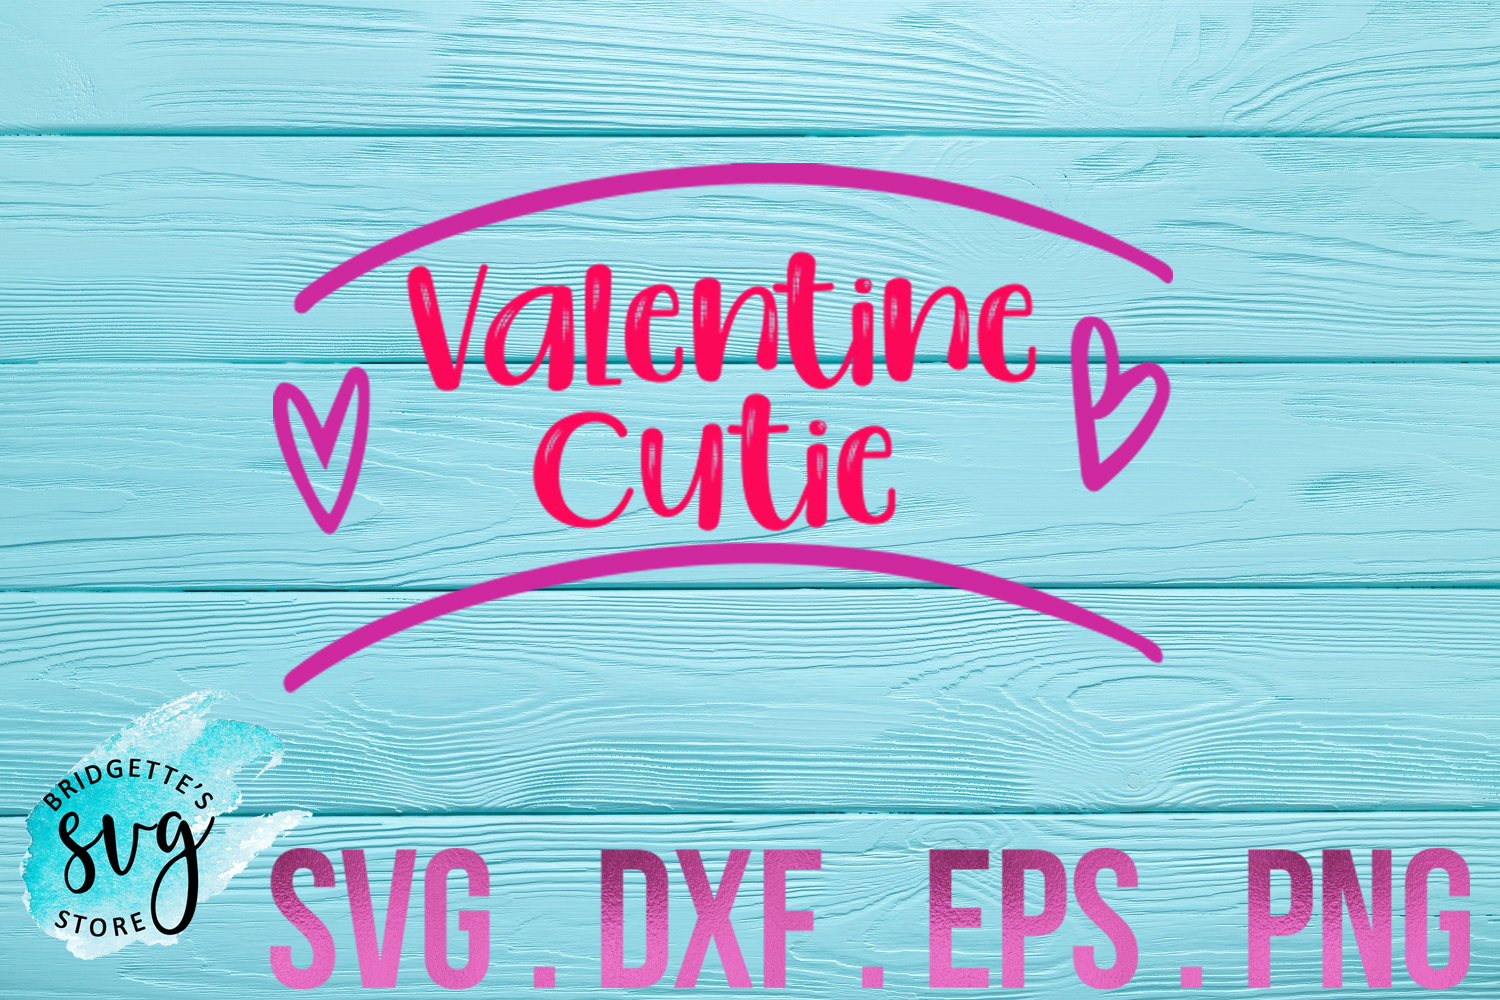 Download Free Valentine Cutie Graphic By Luxmauve Creative Fabrica for Cricut Explore, Silhouette and other cutting machines.